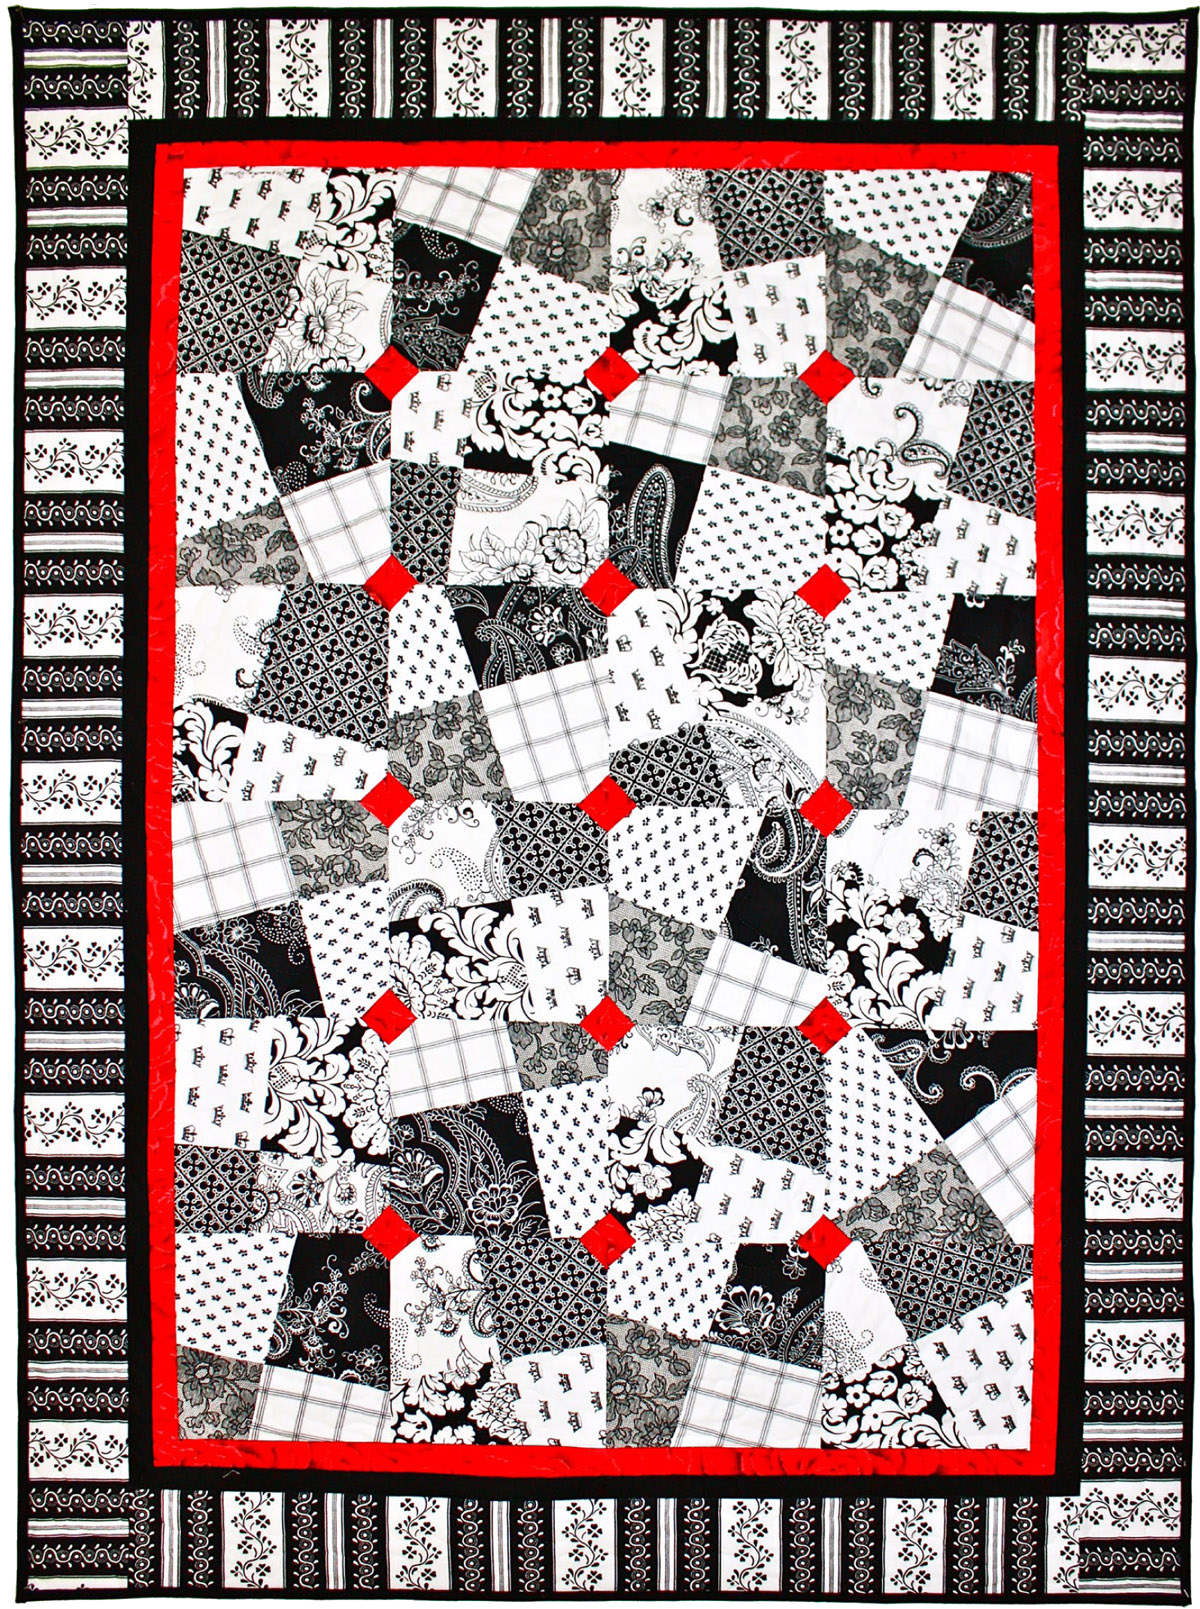 Red And Black Quilt Patterns : black, quilt, patterns, BLACK,, WHITE, ALLOVER, QUILT, PATTERNS, INSPIRED, Quilts,, Black, White, Quilt, Patterns